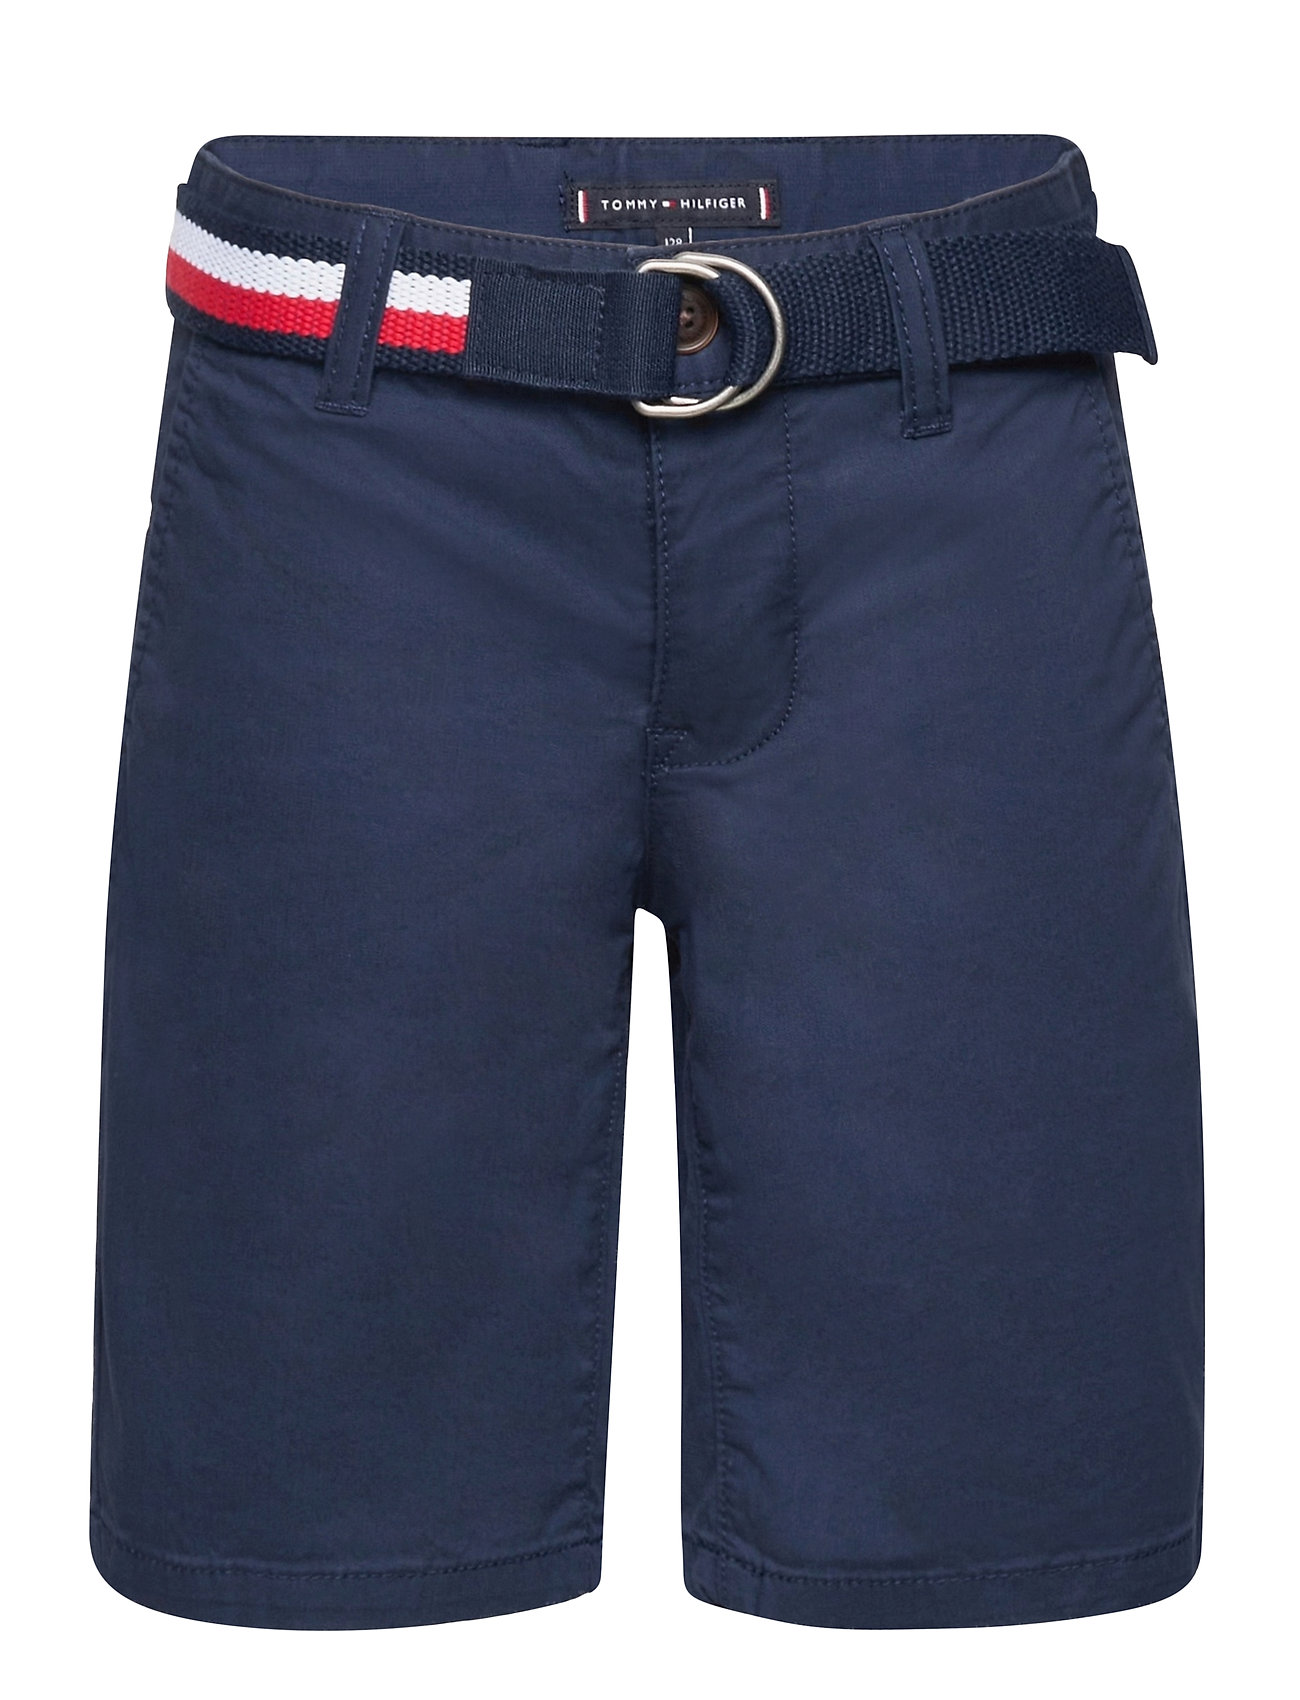 Image of Essential Belted Chino Shorts Shorts Blå Tommy Hilfiger (3501576315)